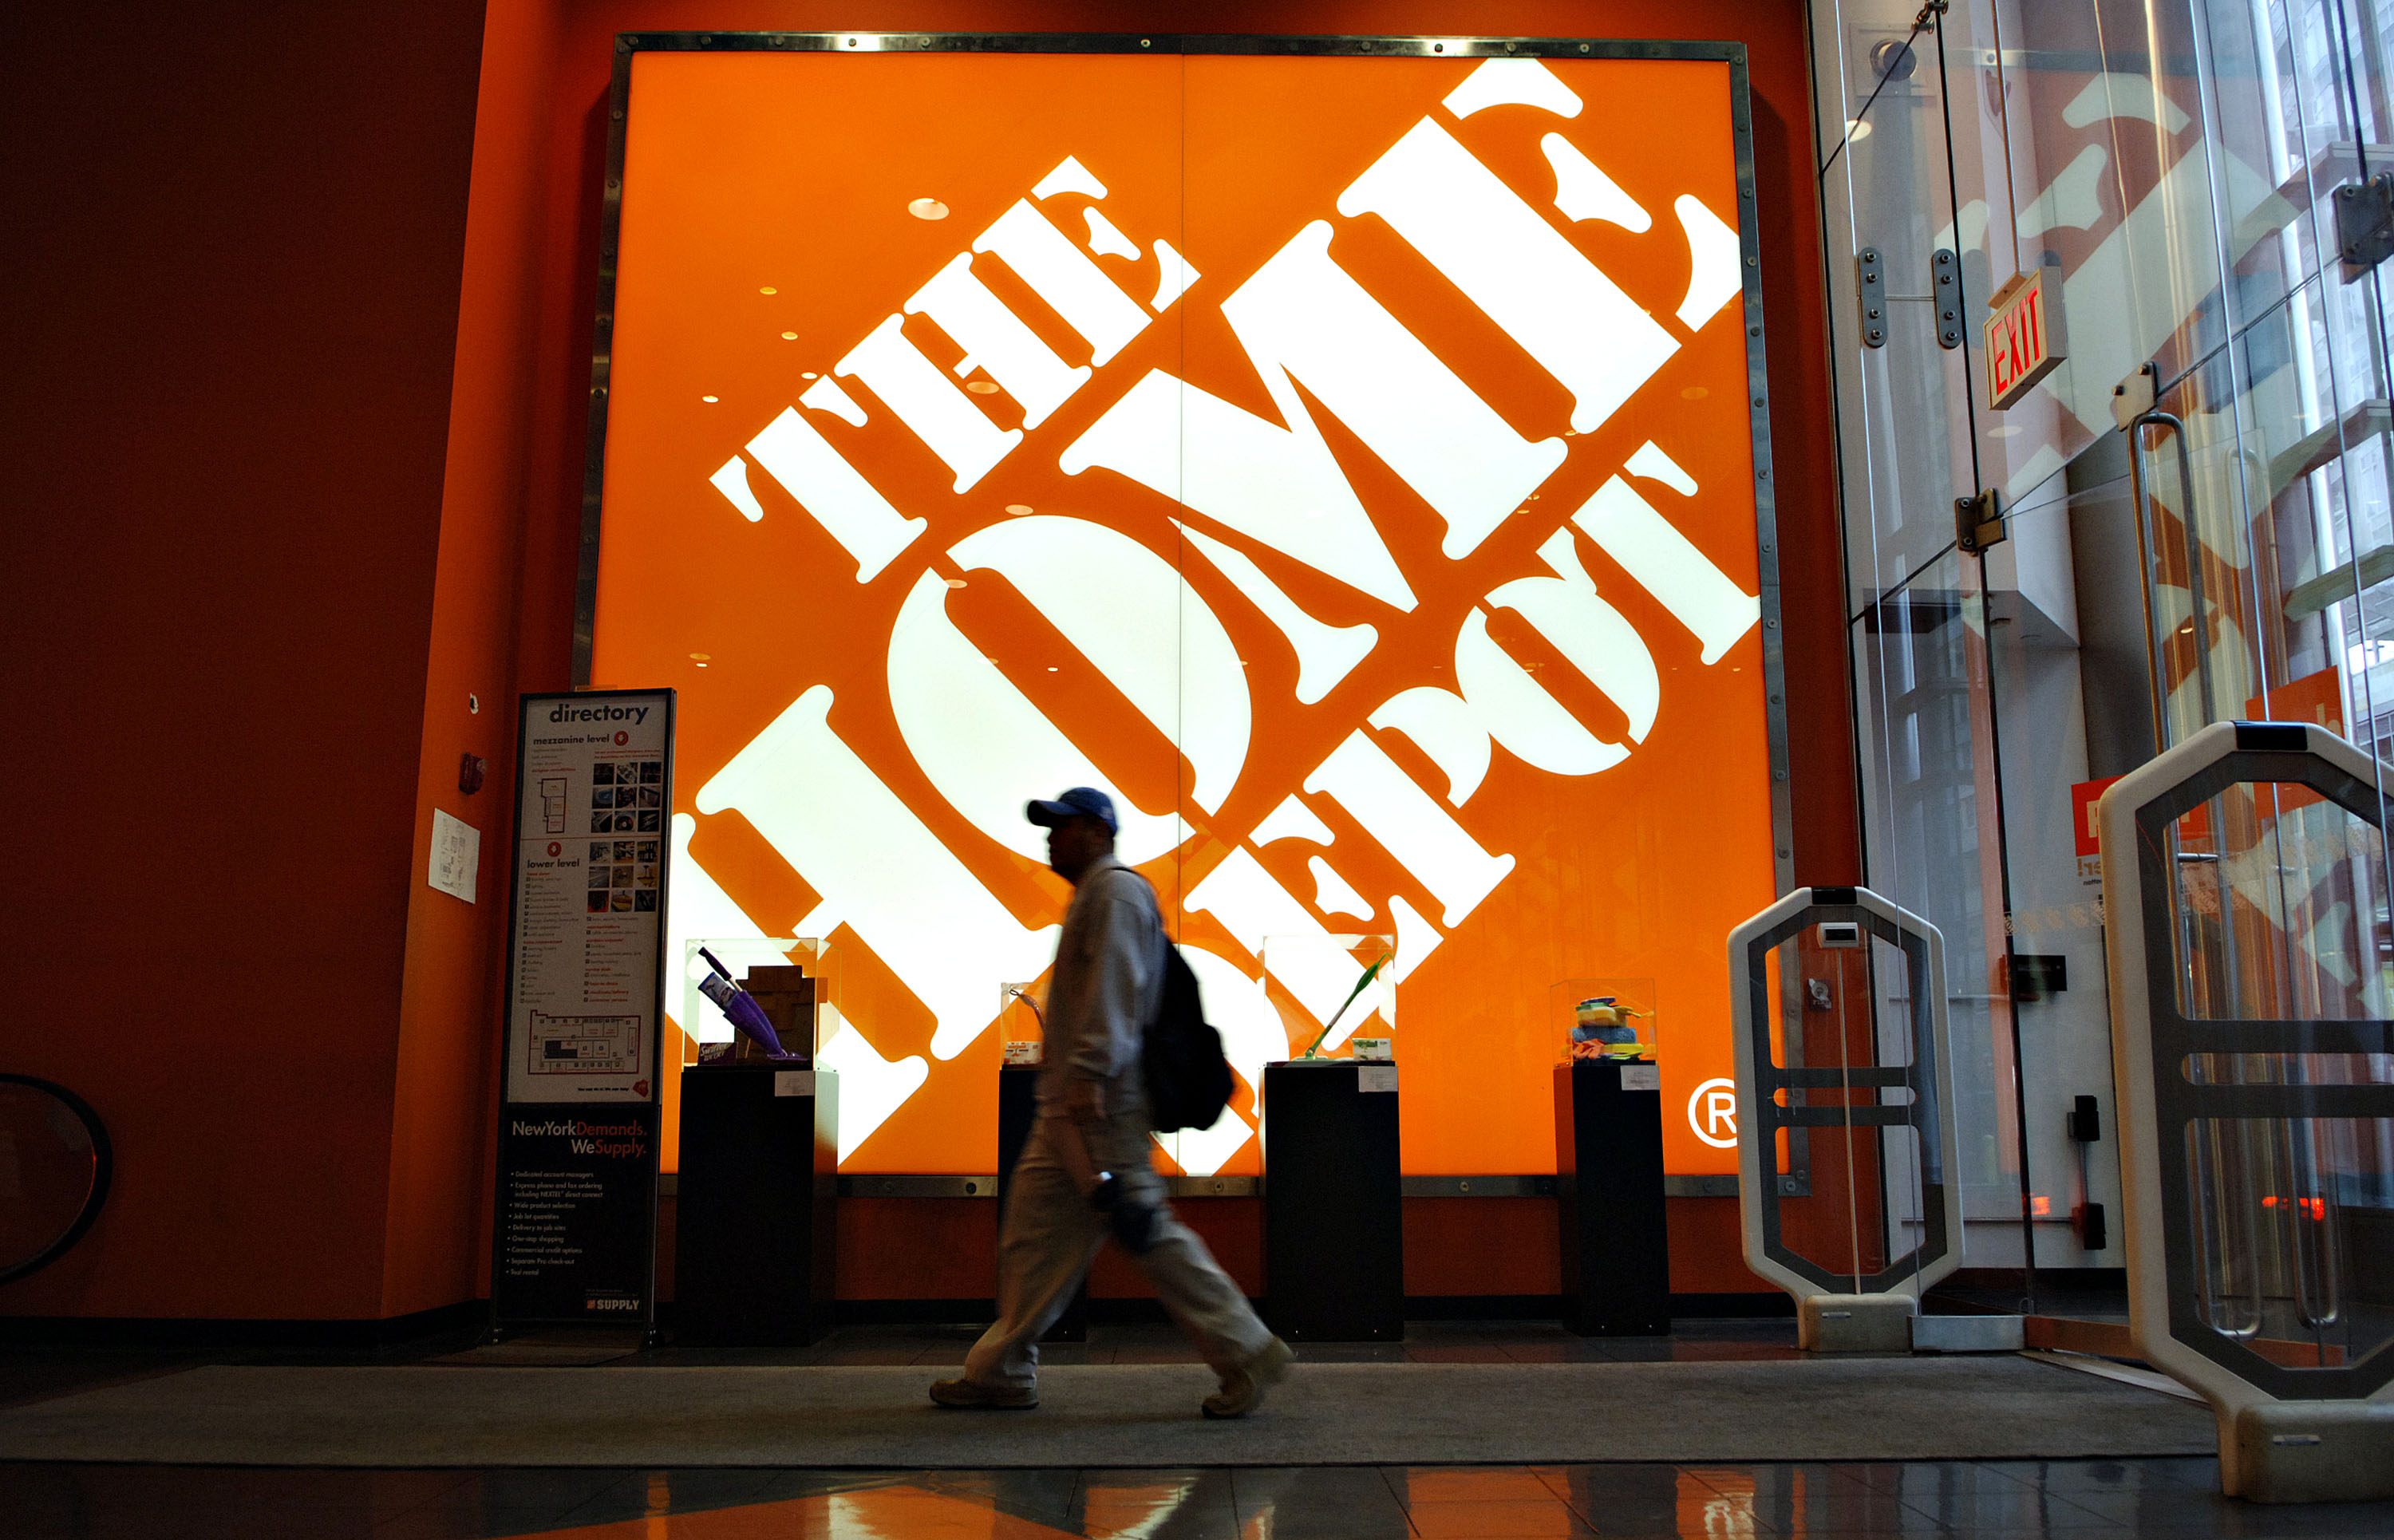 A shopper walks past a large Home Depot logo inside a store in New York on May 16, 2006